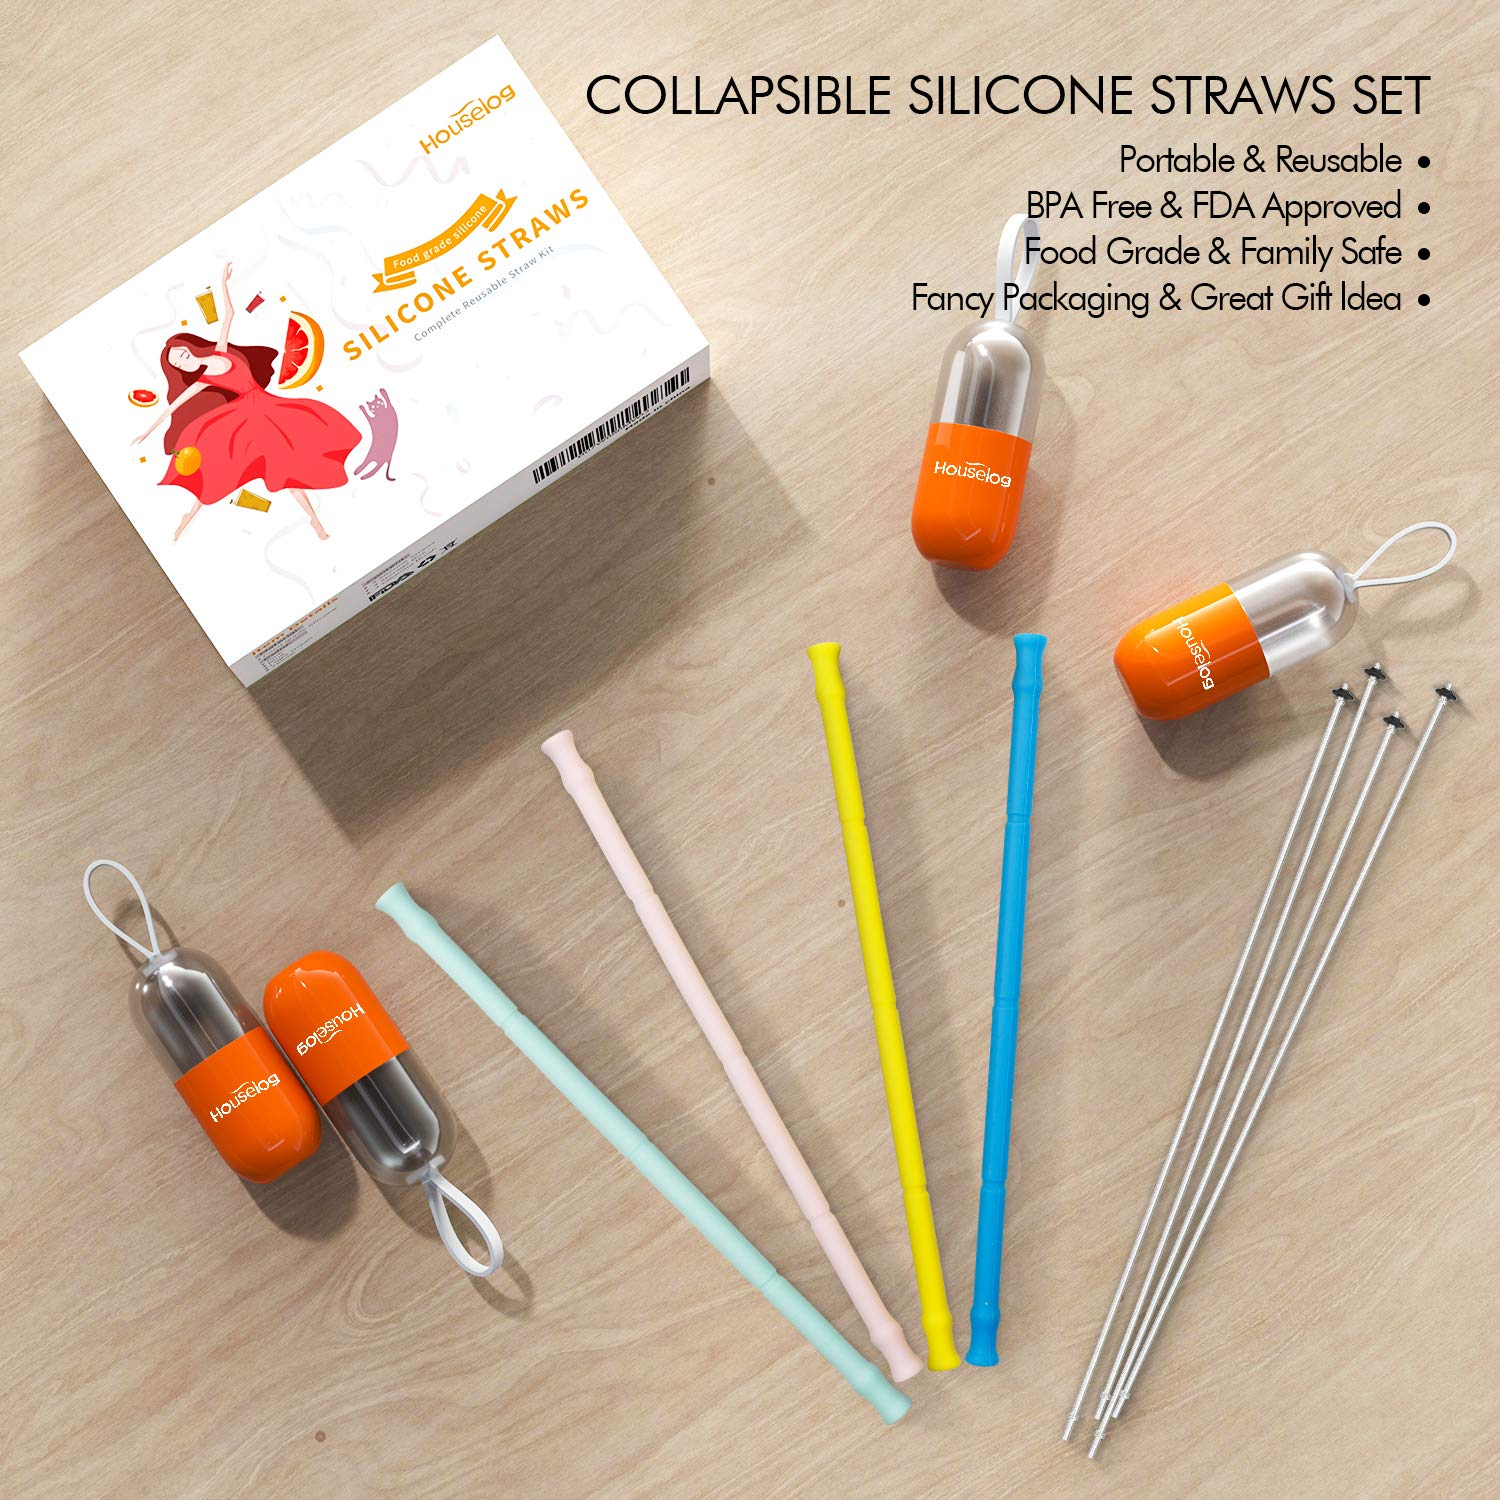 Reusable Silicone Collapsible Straws Food-Grade Drinking Straws 9.84 Inch